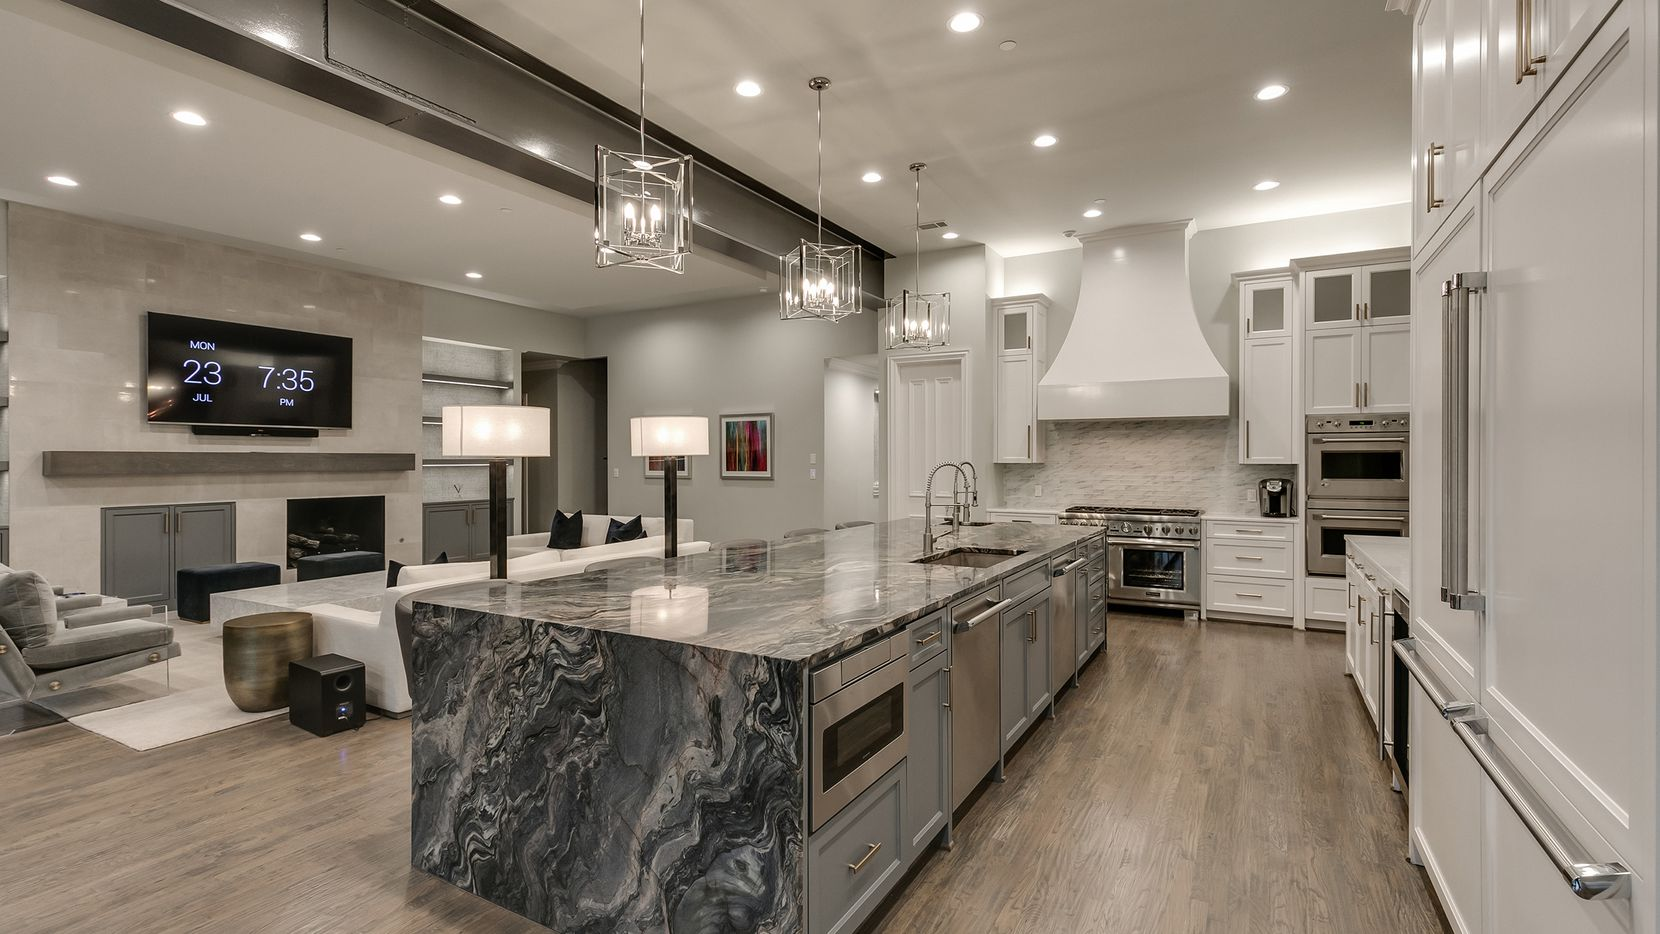 The estate at 2204 Plantation Lane in Plano is offered at $4,650,000. The kitchen includes a 14-foot granite island imported from Spain.